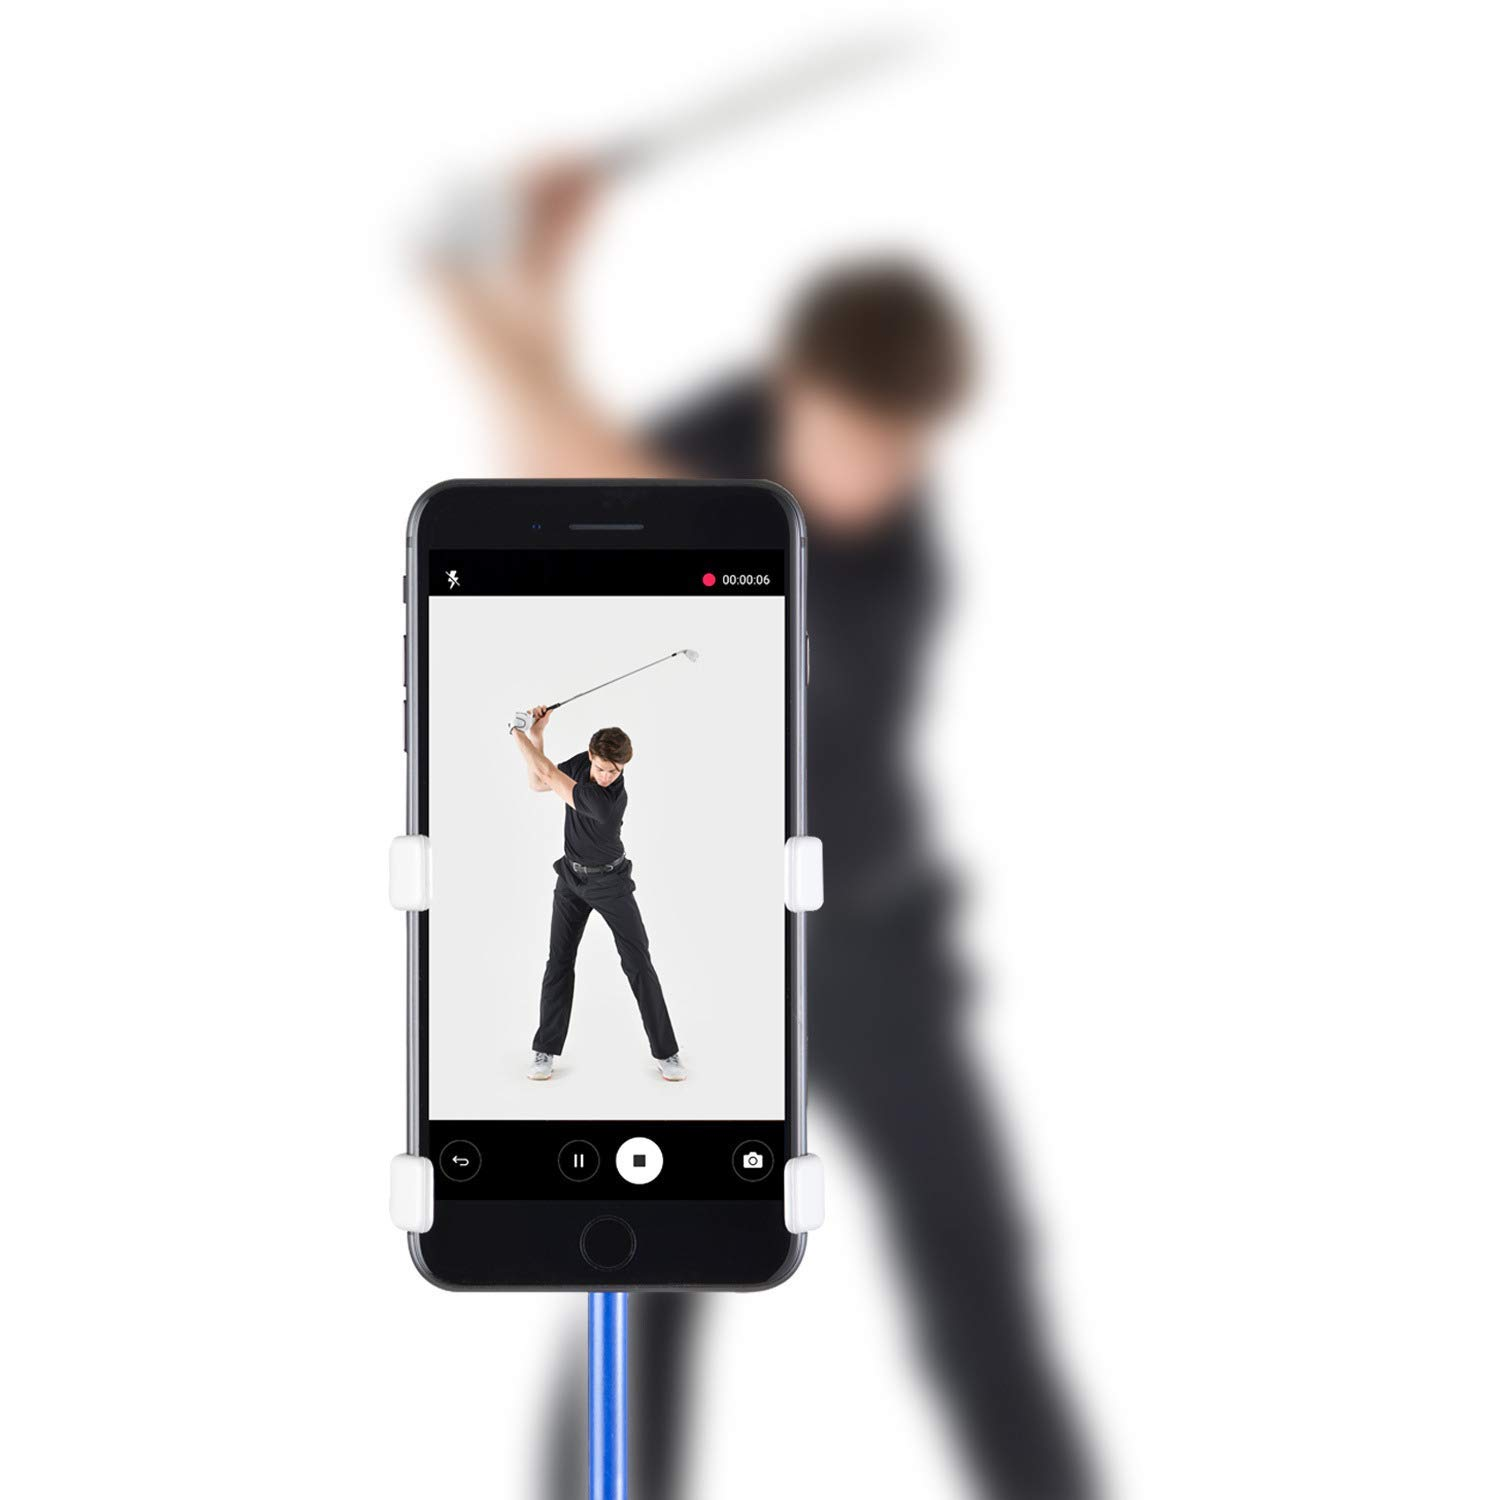 SelfieGolf Record Golf Swing-Cell Phone Clip Holder and Training Aid by TM-Golf Accessories |The Winner of The PGA Best of 2017 |Compatible with Any Smart Phone,Quick Set Up (Matte Black) by Selfie Golf (Image #1)